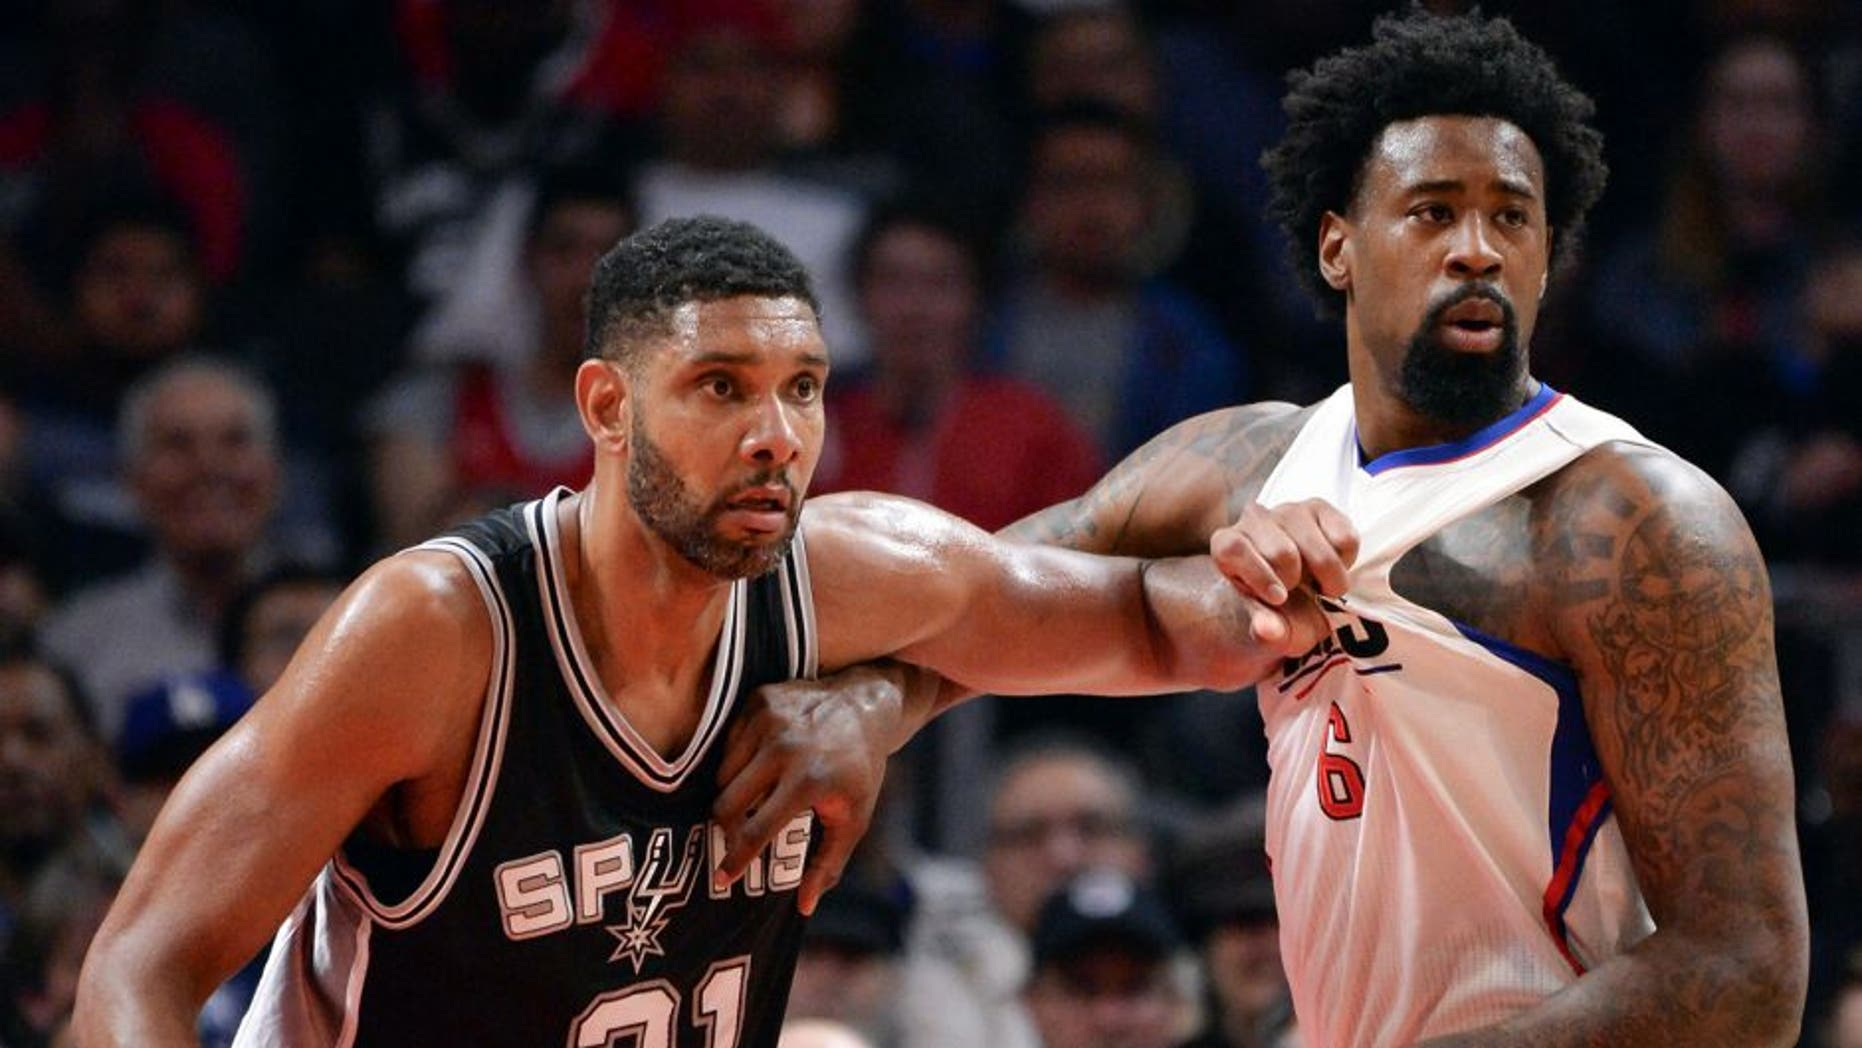 Feb 18, 2016; Los Angeles, CA, USA; San Antonio Spurs center Tim Duncan (21) and Los Angeles Clippers center DeAndre Jordan (6) jostle for position on the baseline during the 2nd half at Staples Center. Mandatory Credit: Robert Hanashiro-USA TODAY Sports